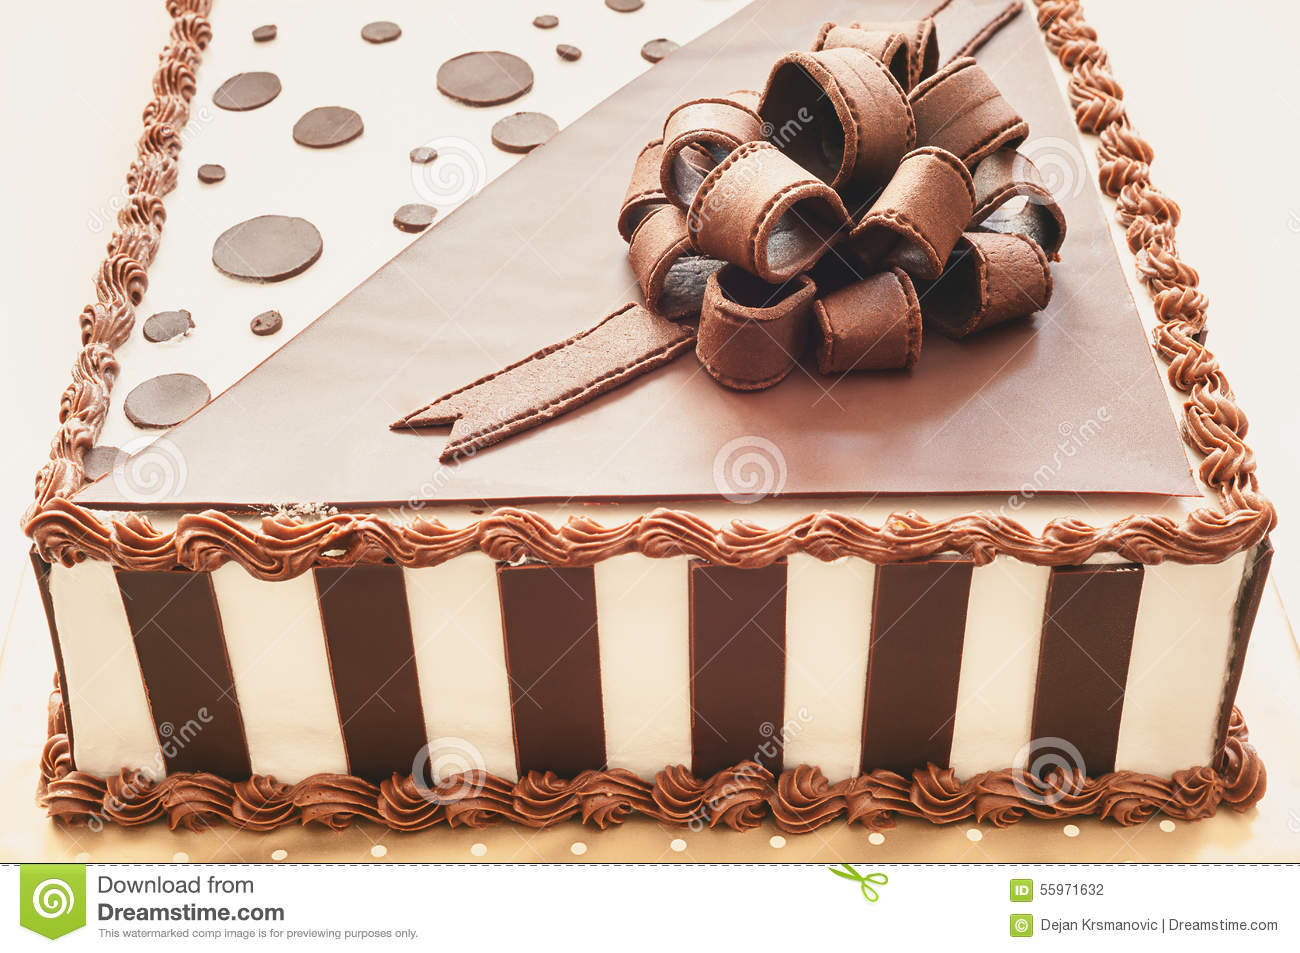 D coration de g teau de chocolat photo stock image 55971632 for Decoration 3 chocolat